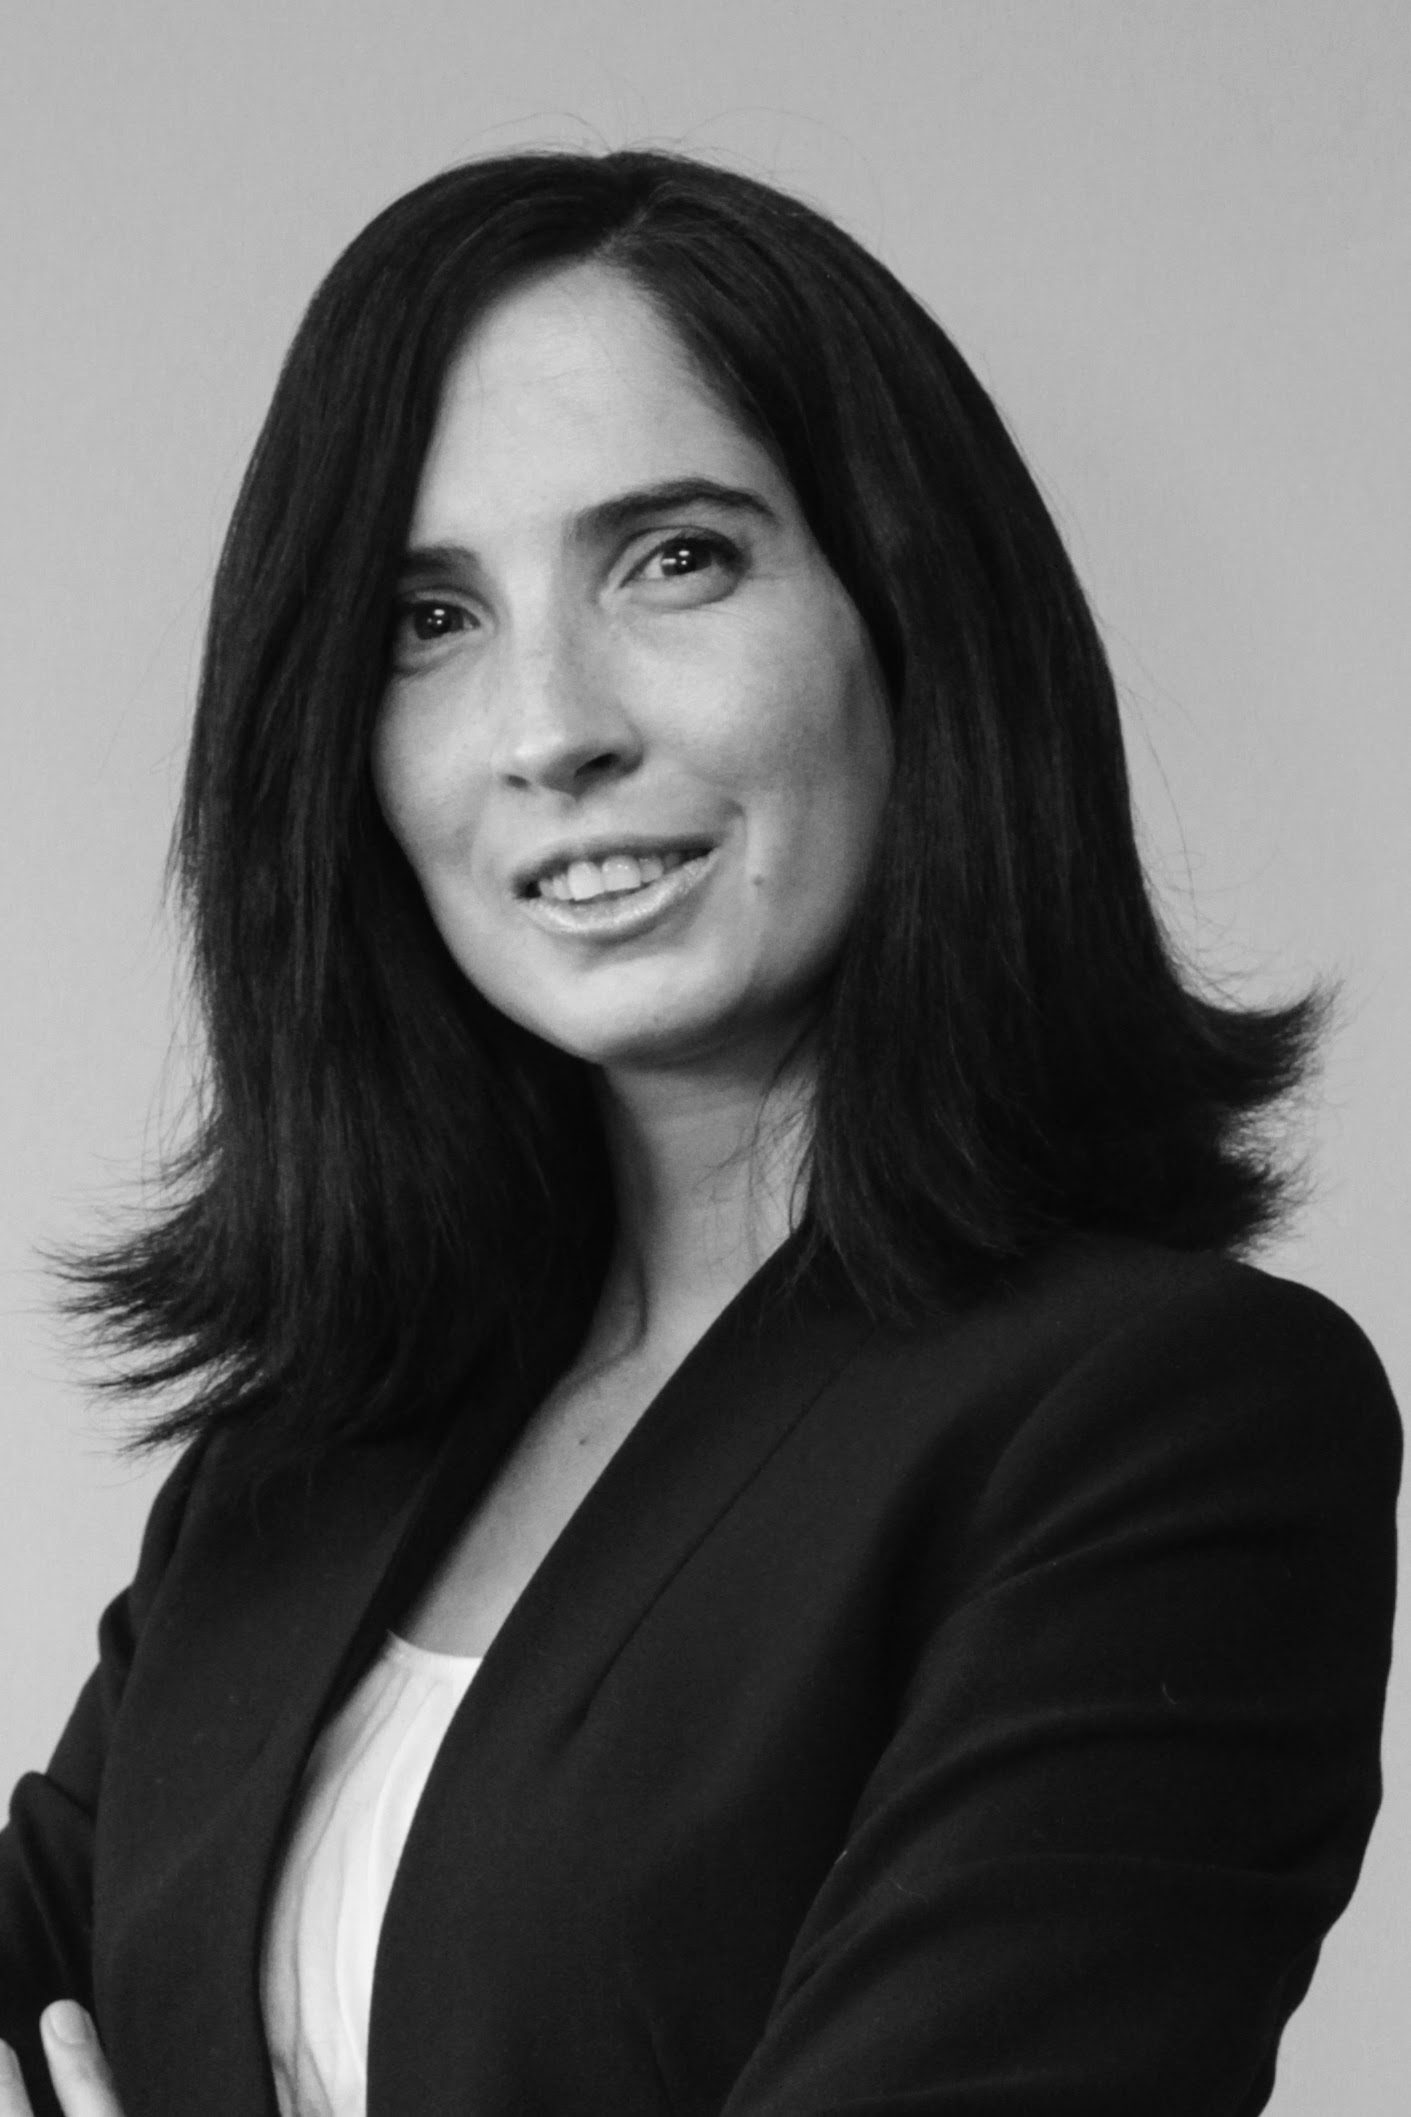 Stephanie Williams - Director of eDiscovery,Licensed (non-practicing) Paralegal in Ontarioswilliams@ellwood.com(416) 409-1065